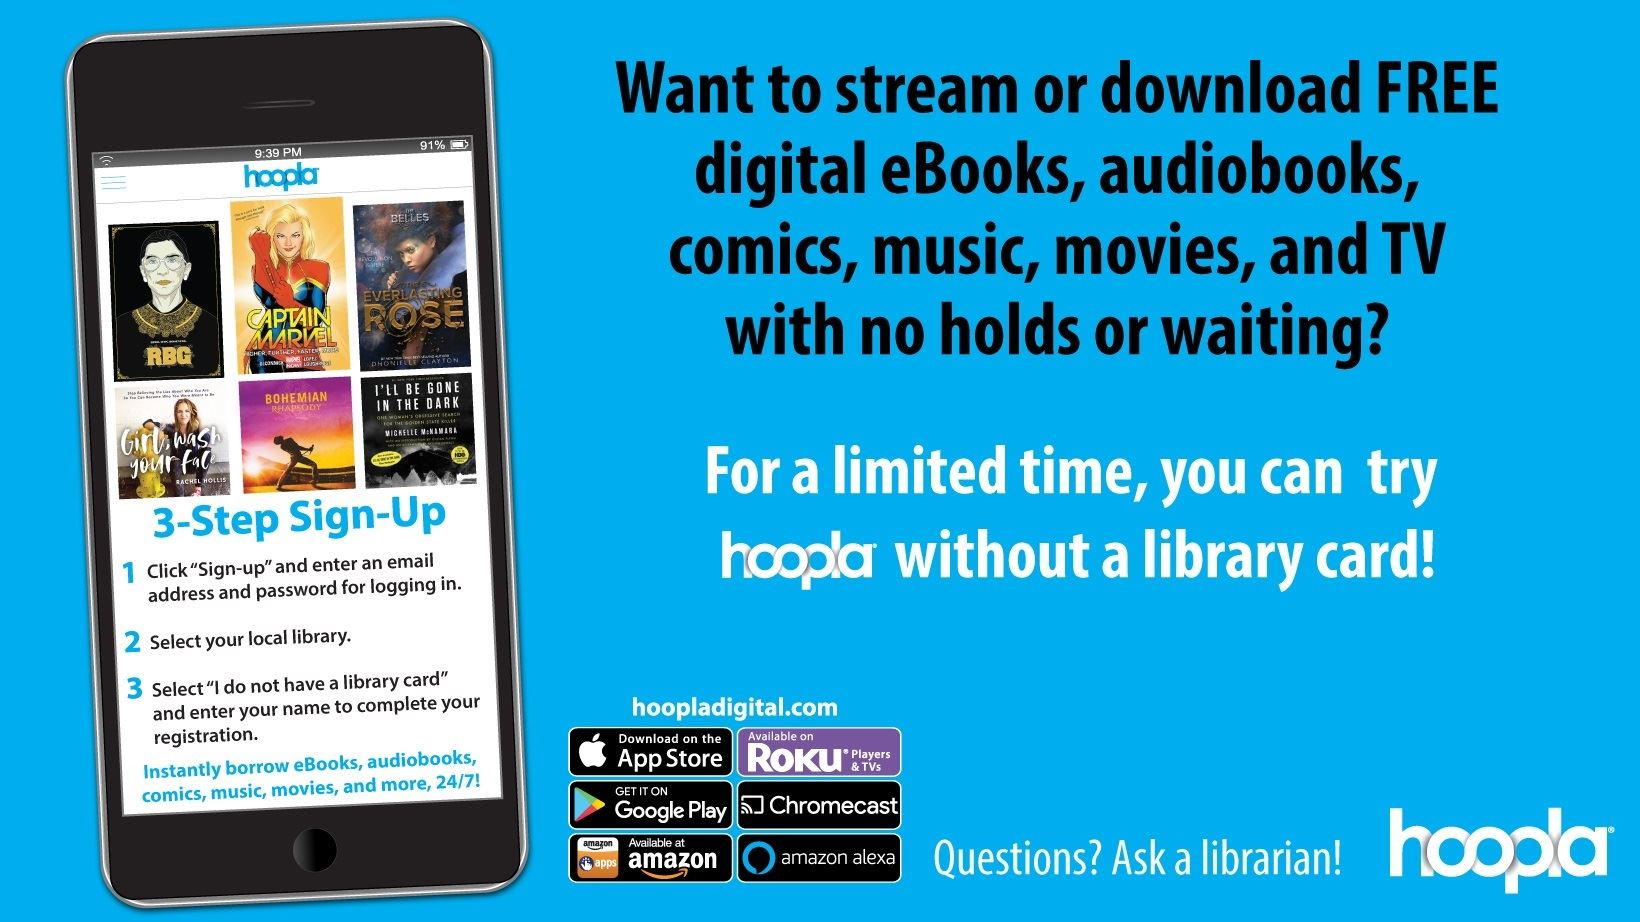 Hoopla is now available without a library card. Download audiobooks, books, movies and more right aw